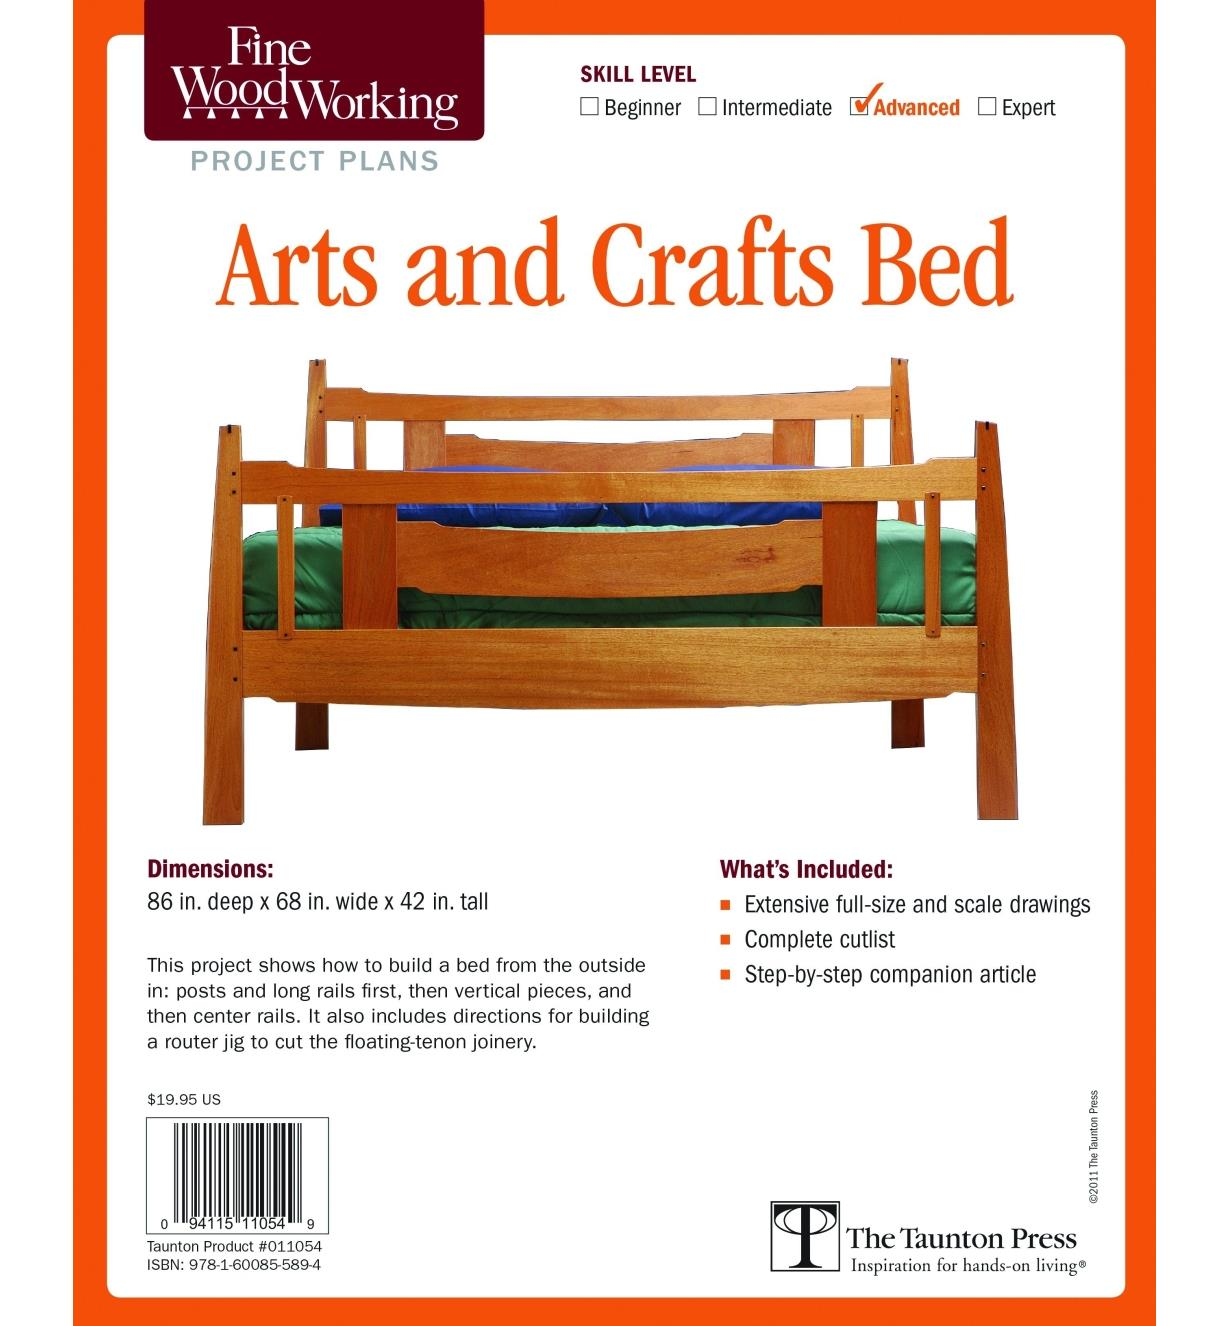 73L2522 - Arts and Crafts Bed Plan